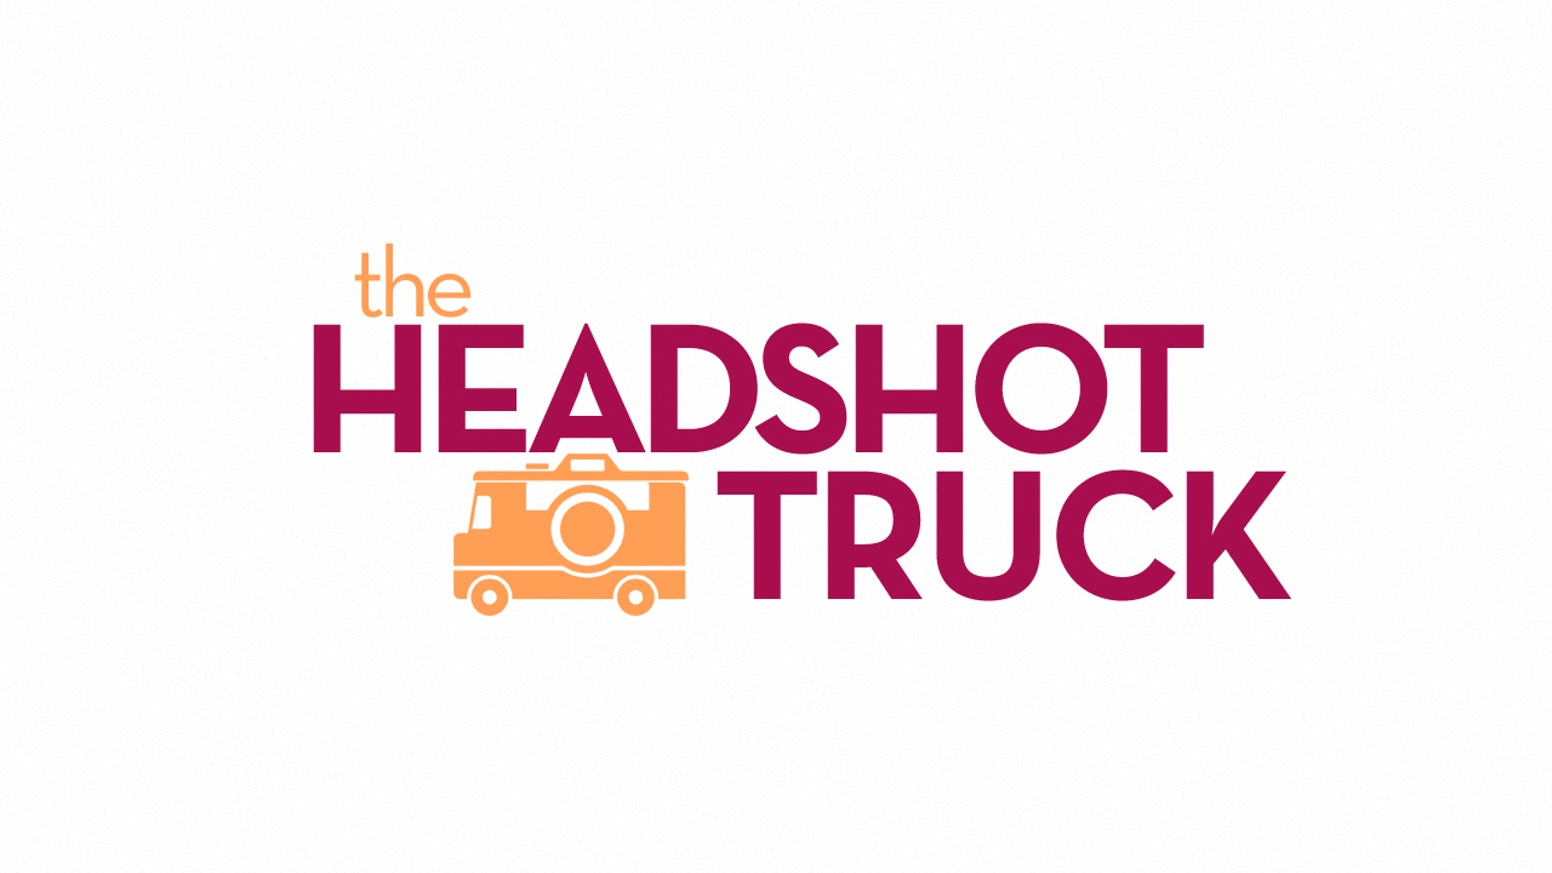 The Headshot Truck - A Mobile Photography Studio for Actors